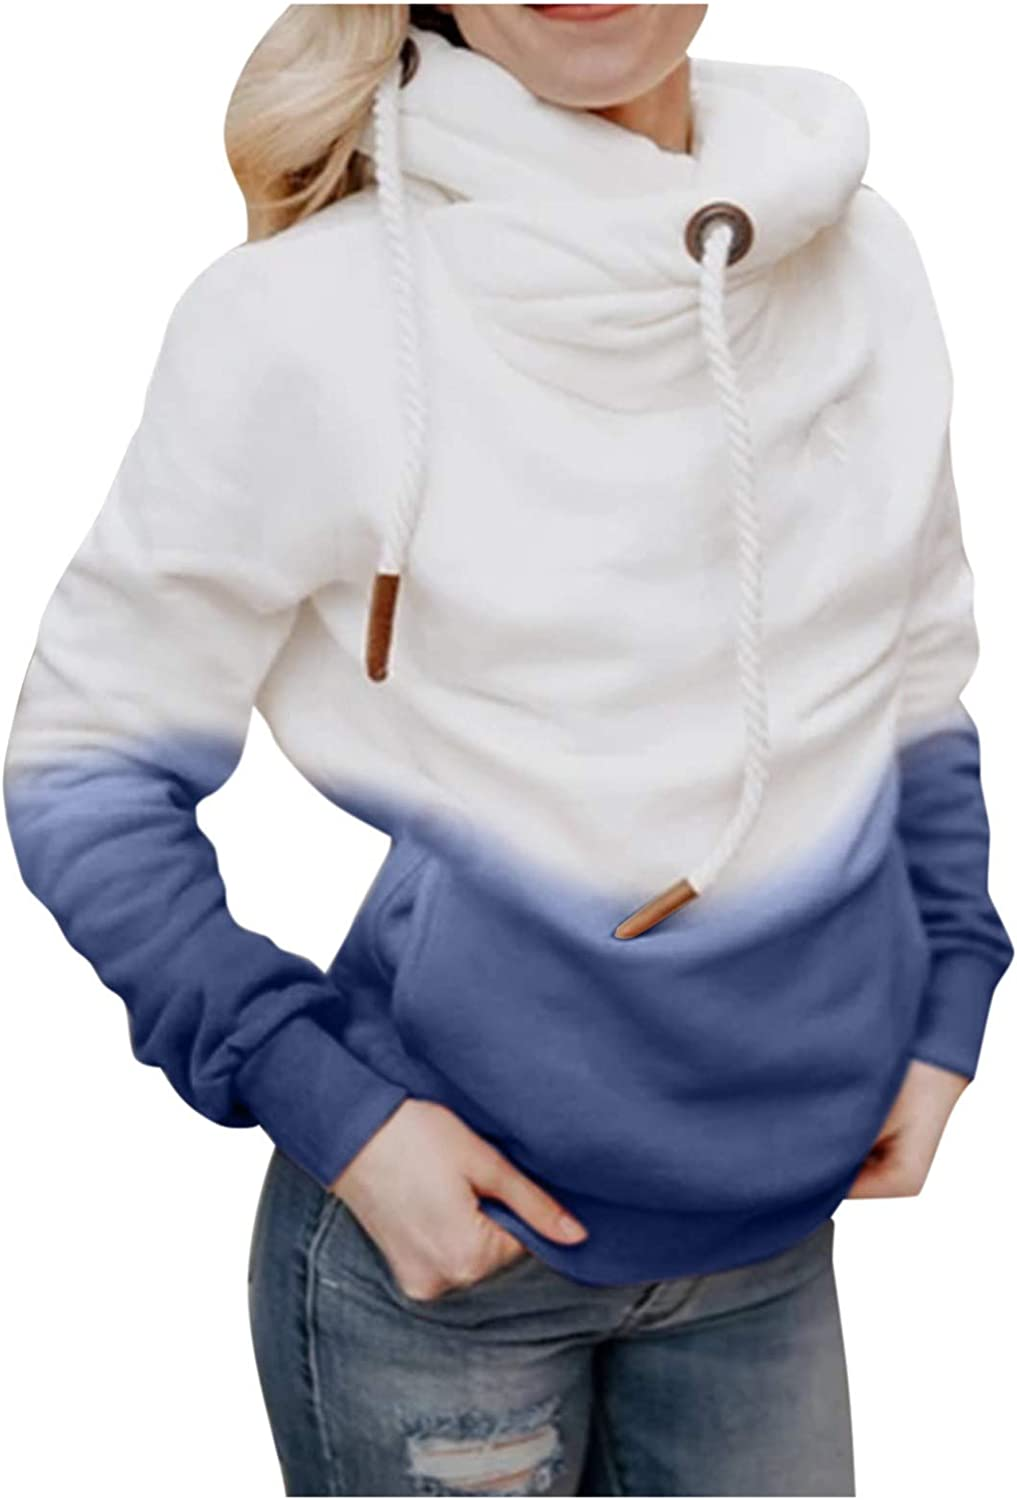 Drawstring Hooded With Pockets for Women Casual Surprise price Now on sale Winter Gradient